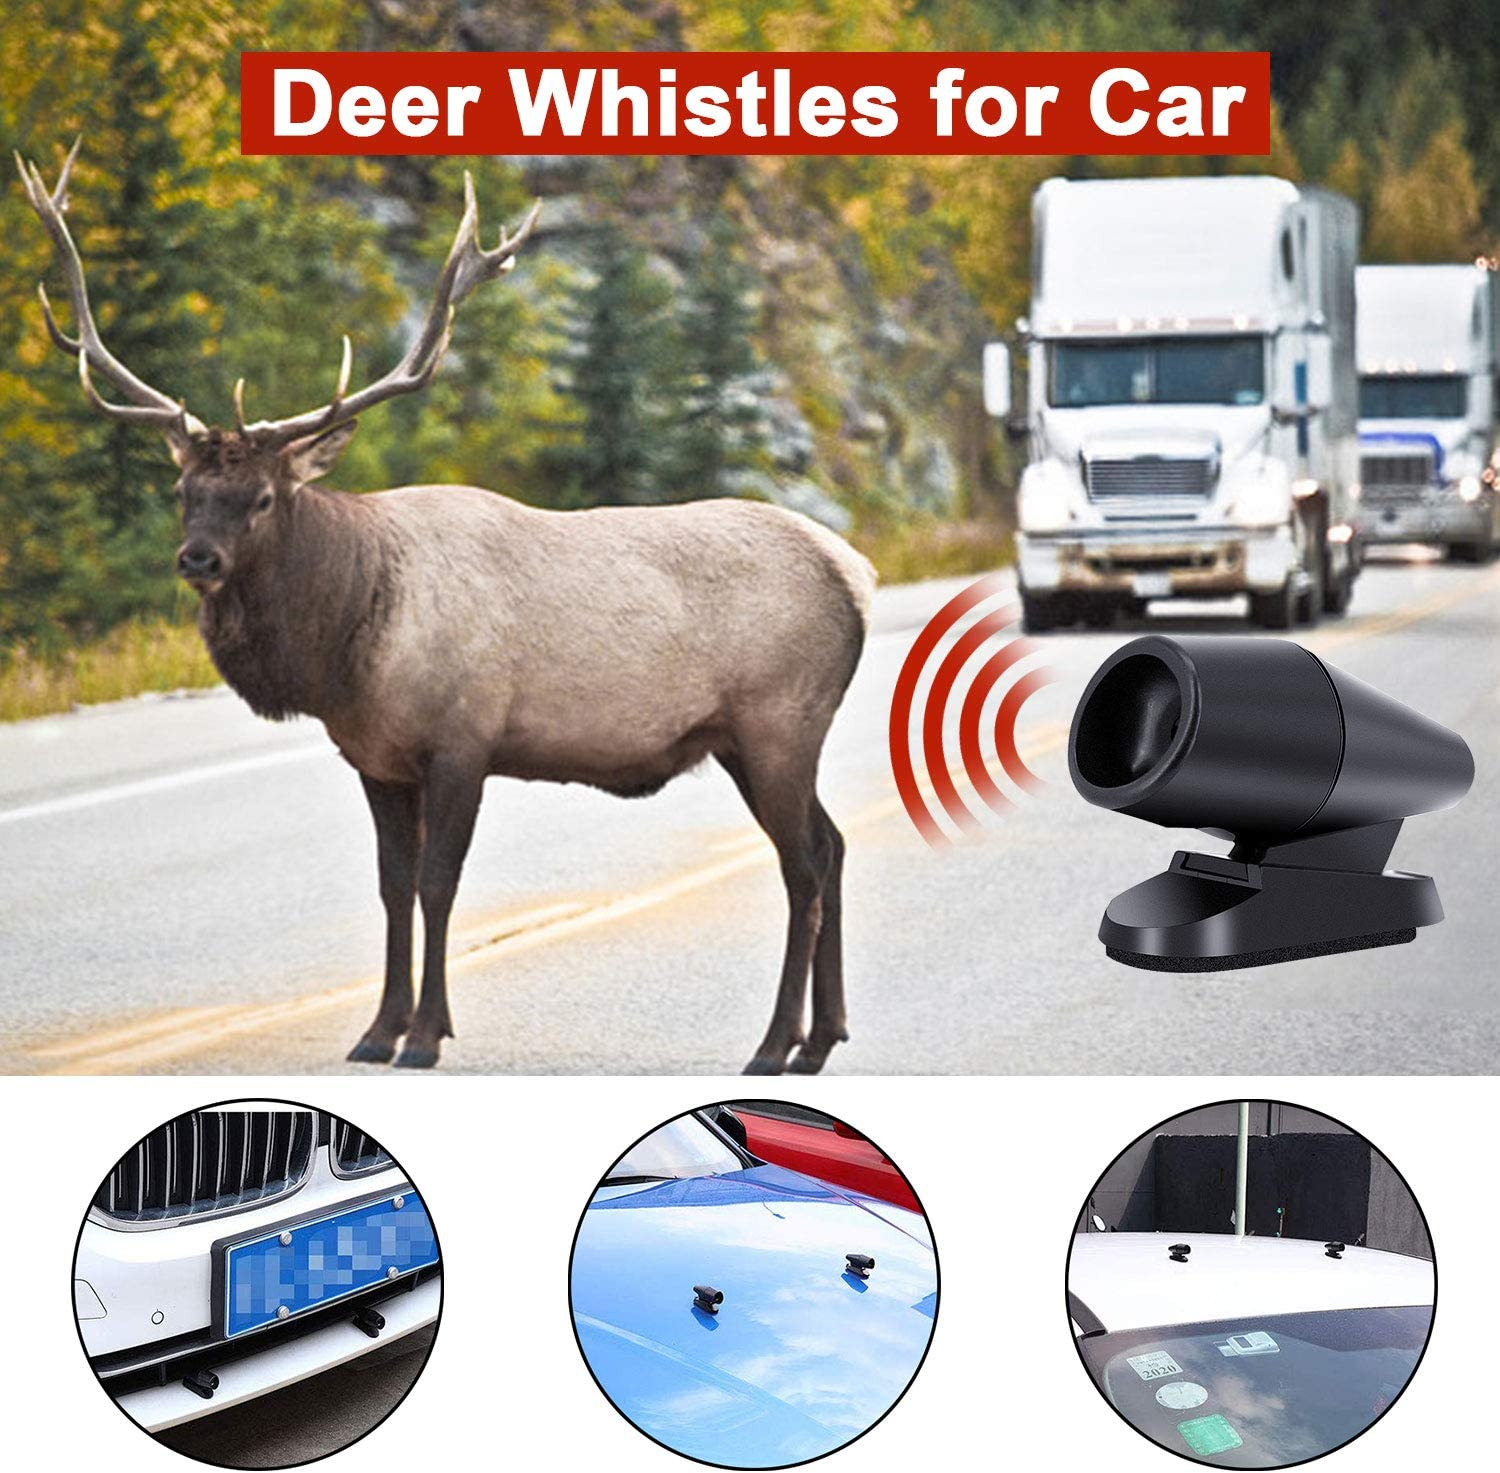 indreamy 10 PCS Deer Whistles for Car Devices Animal Alert Warning Save A Deer Avoid Collisions Automotive Ultrasonic Bell Drive Safe for Car//Truck//Vehicle//Motorcycle